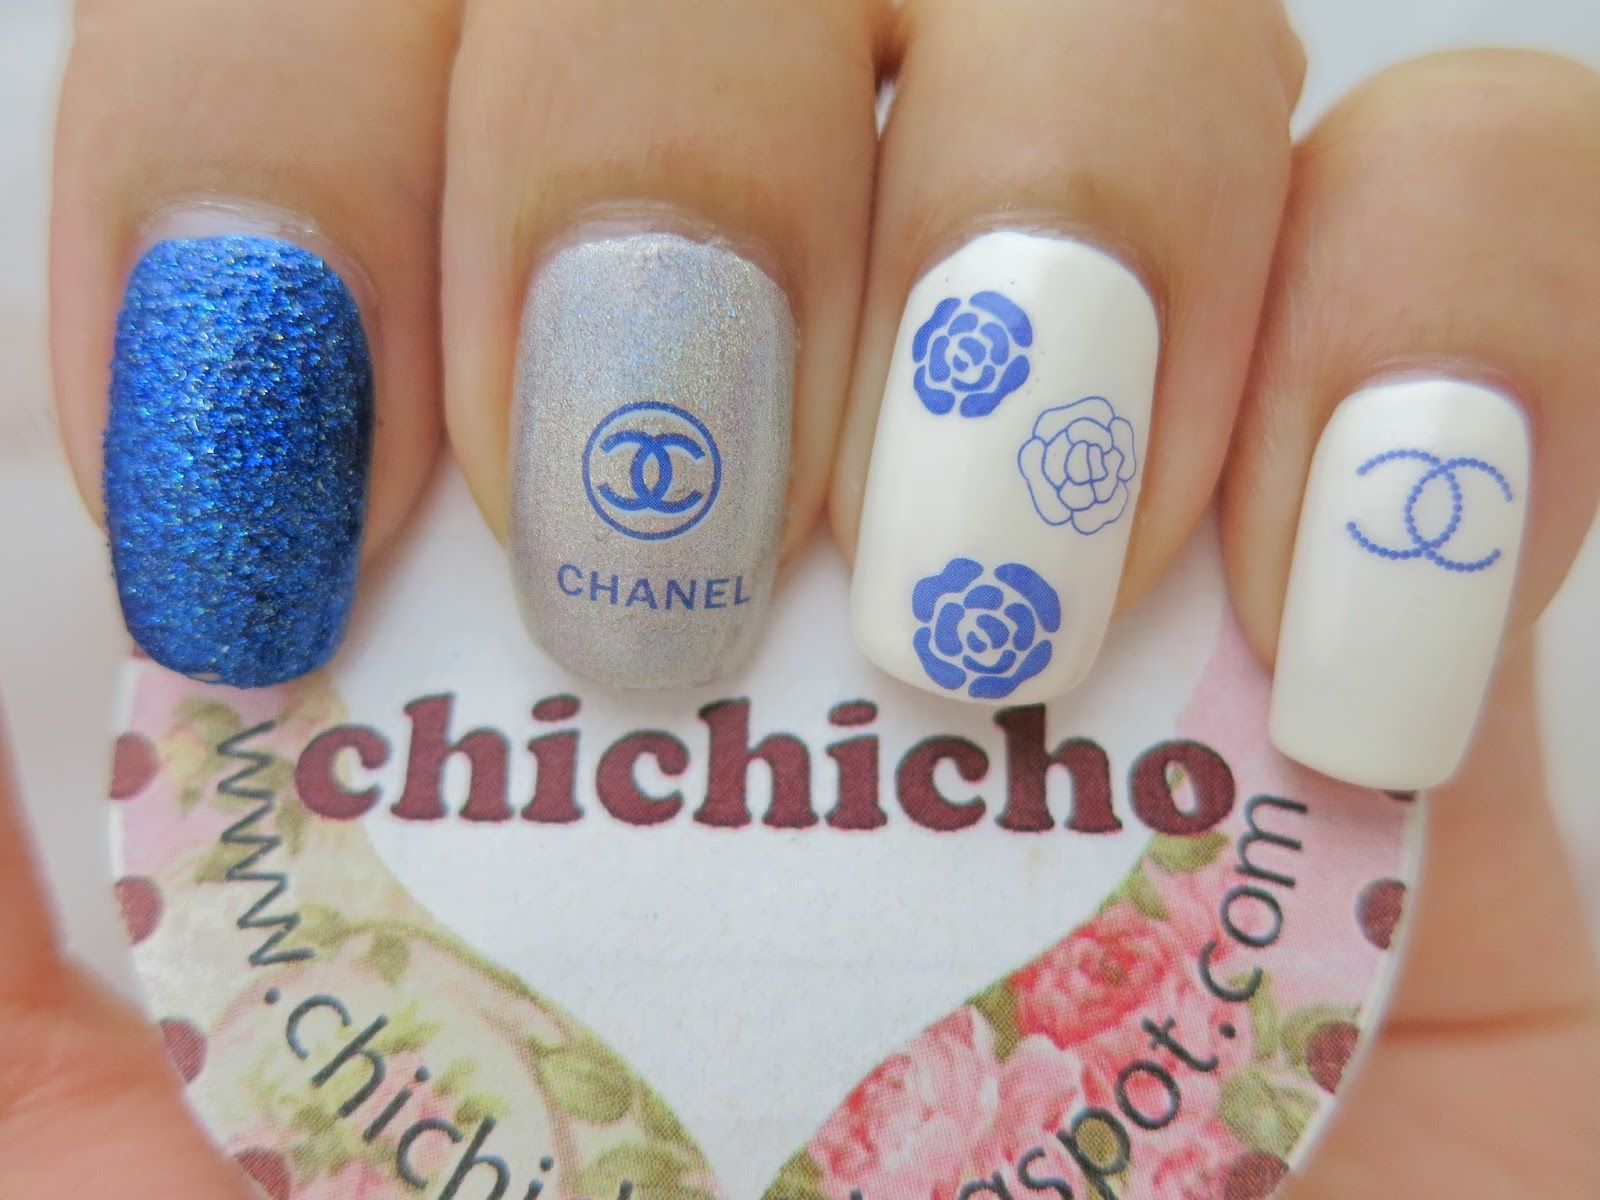 Blue Chanel Water Decal Nail Art BLE2093 - chichicho~